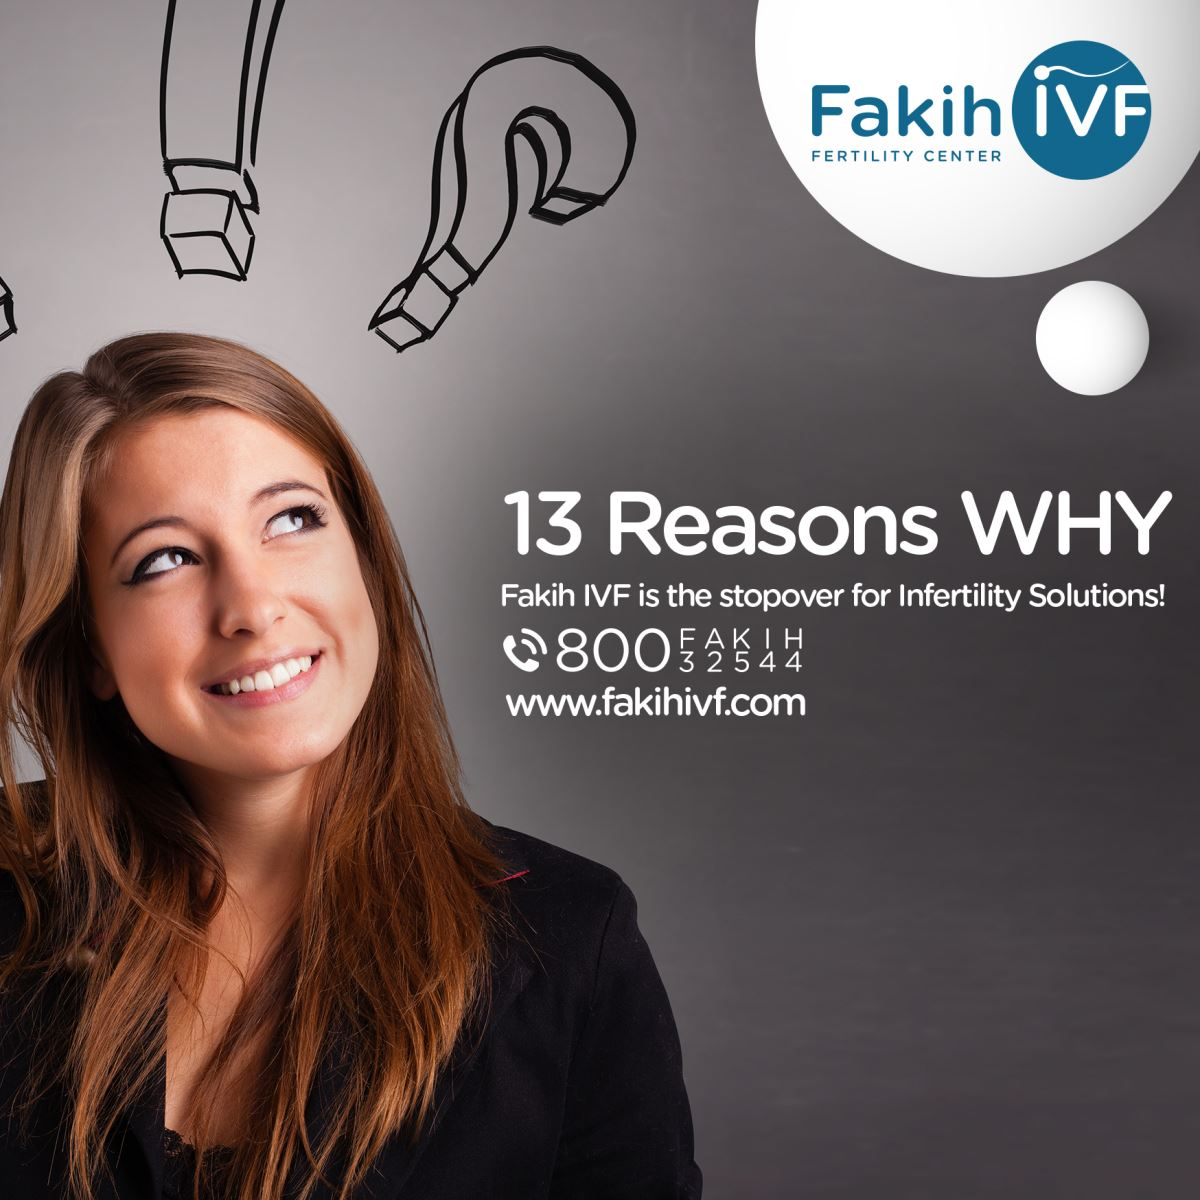 13 reasons why you should trust fakih ivf